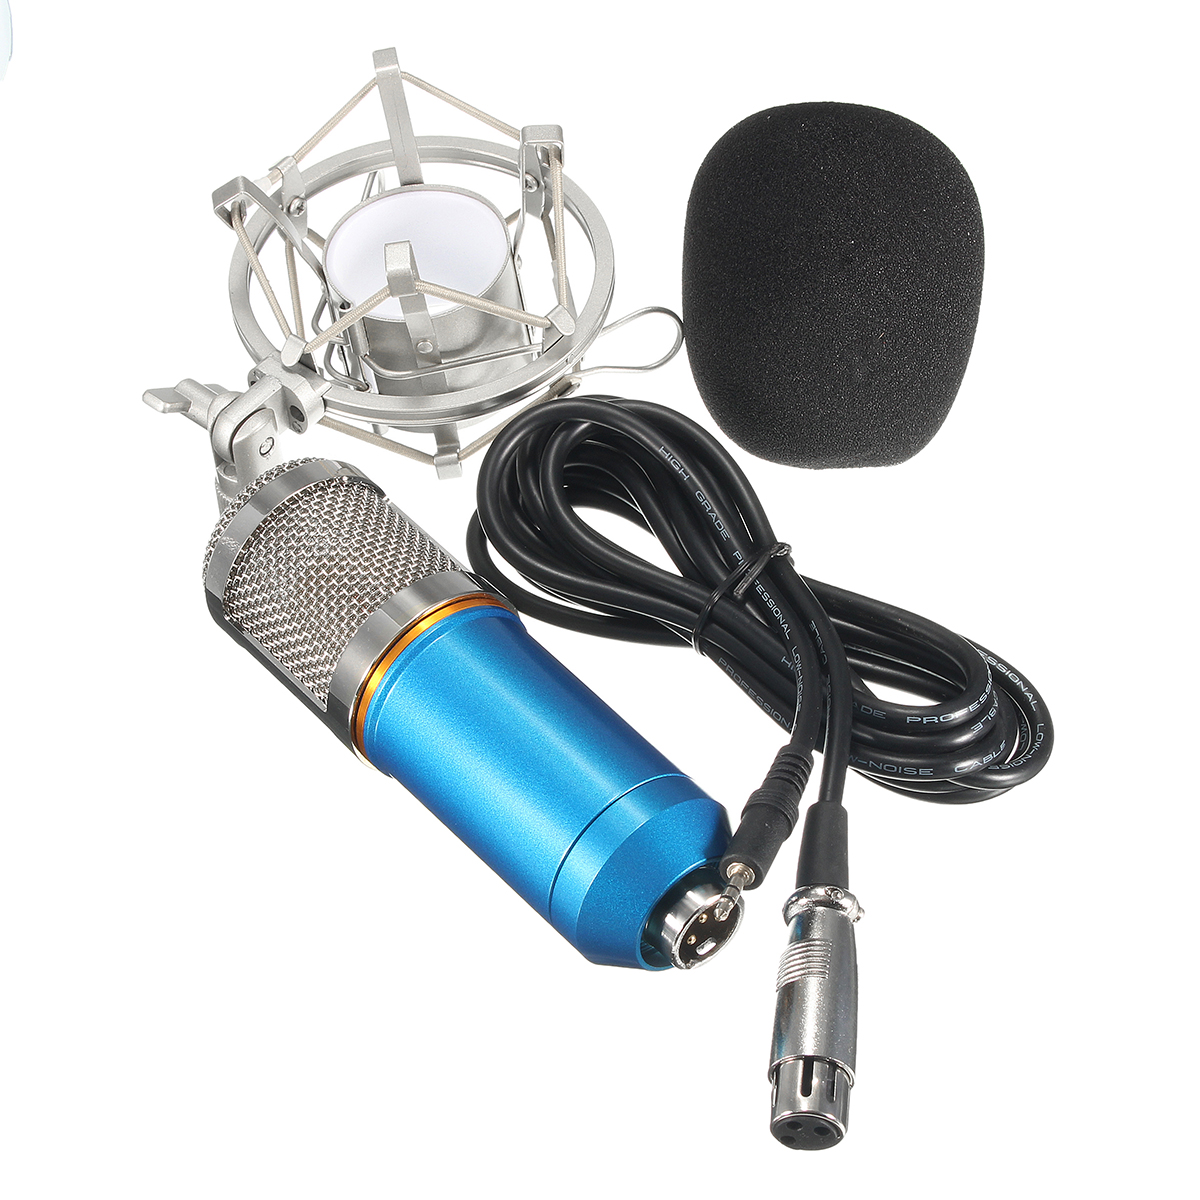 BM-800 Studio Recording Condenser Microphone with Shock Mount Holder, Audio Cable, BOP cover